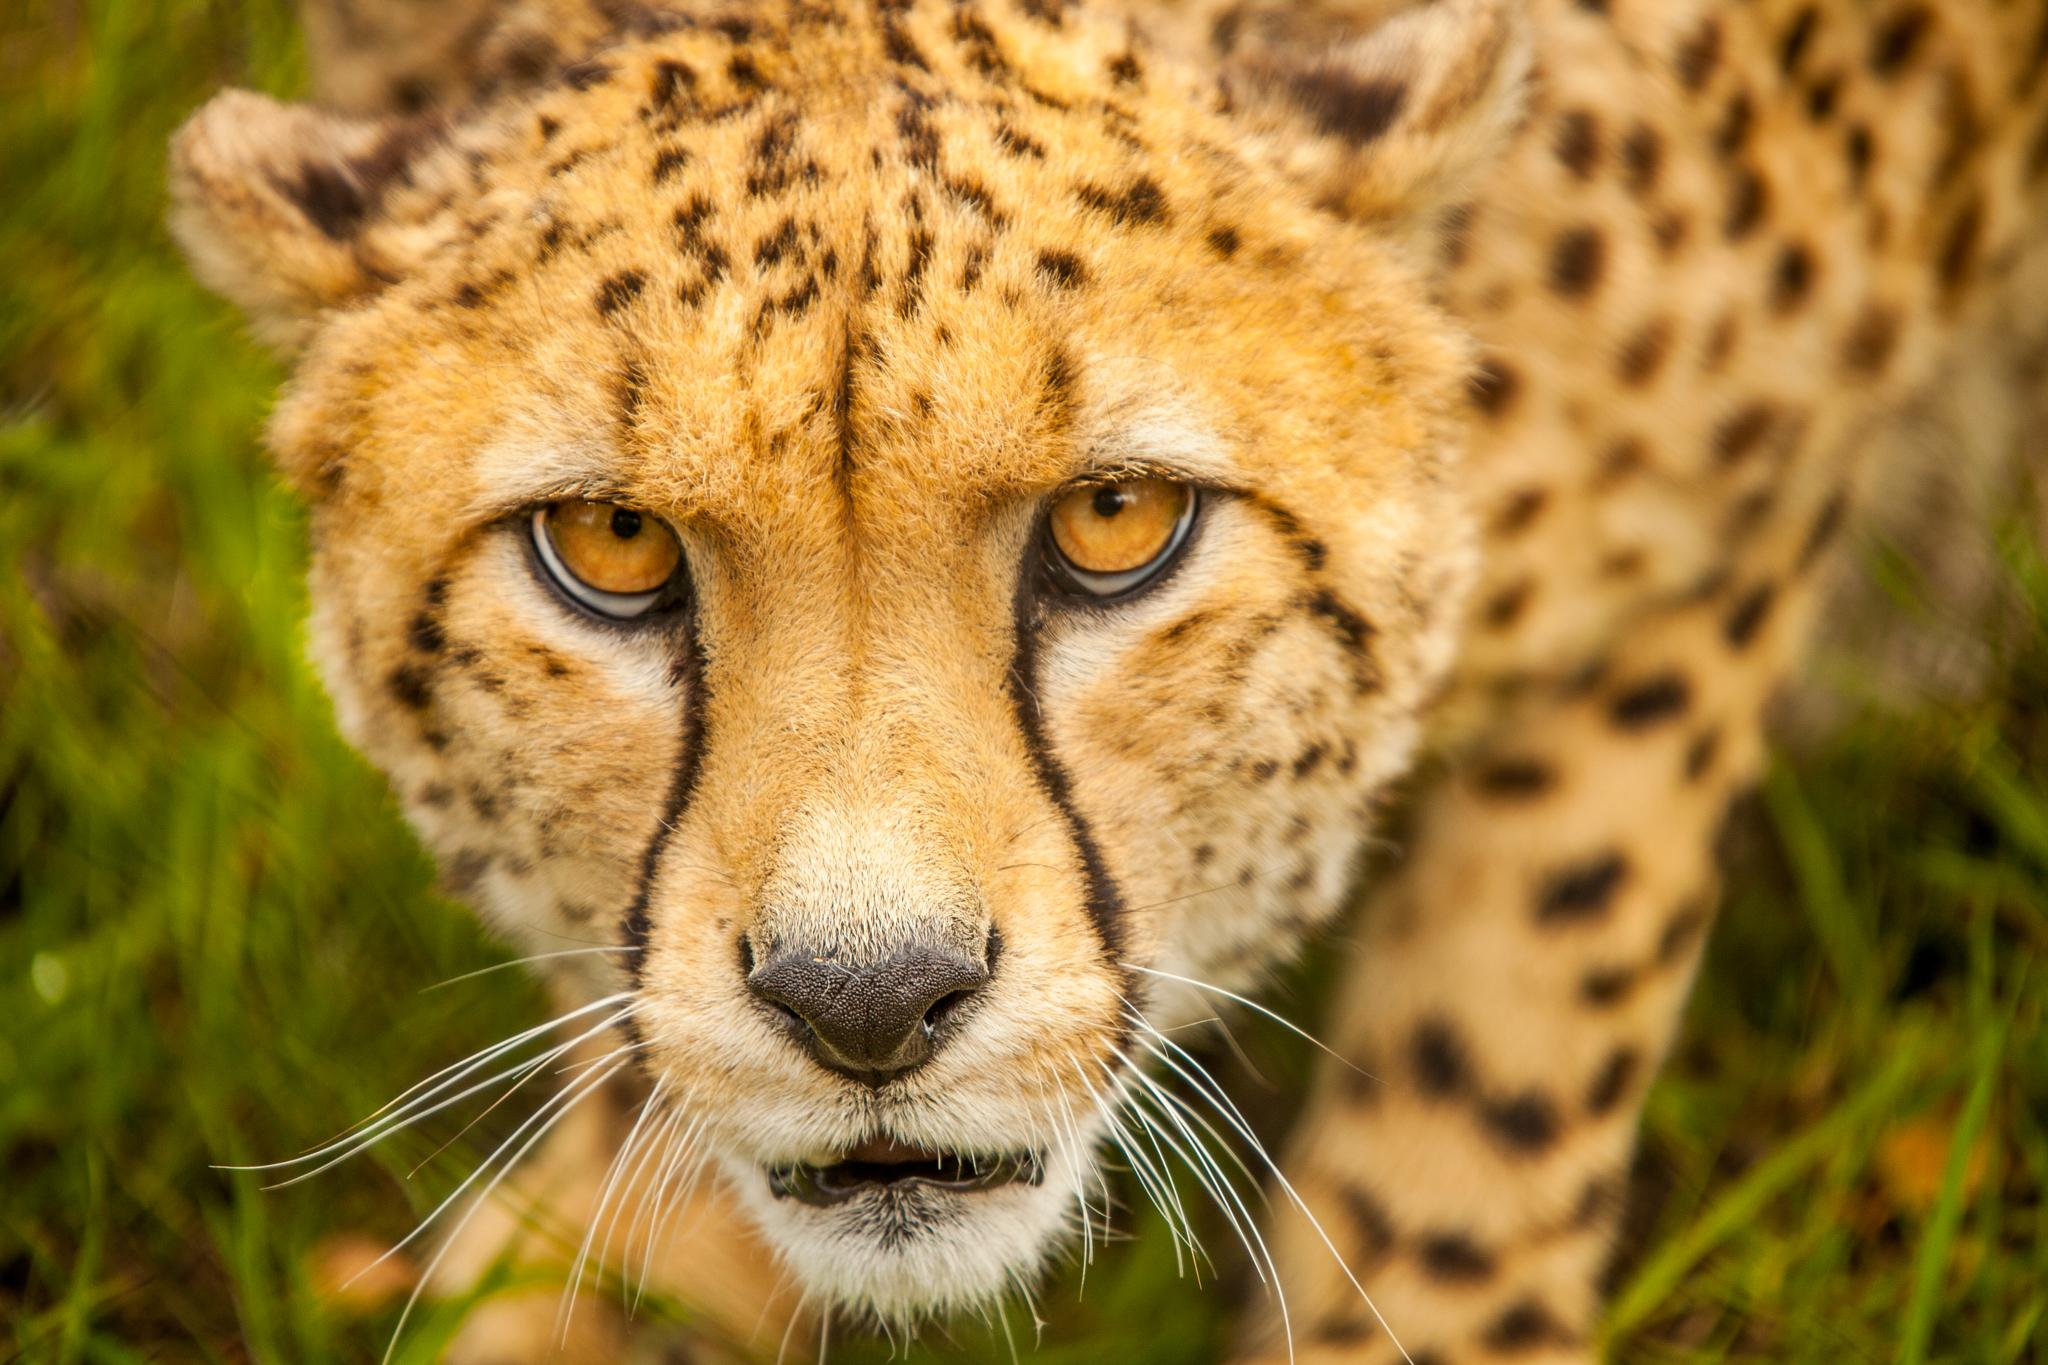 Hungry Eyes by Russ Summers